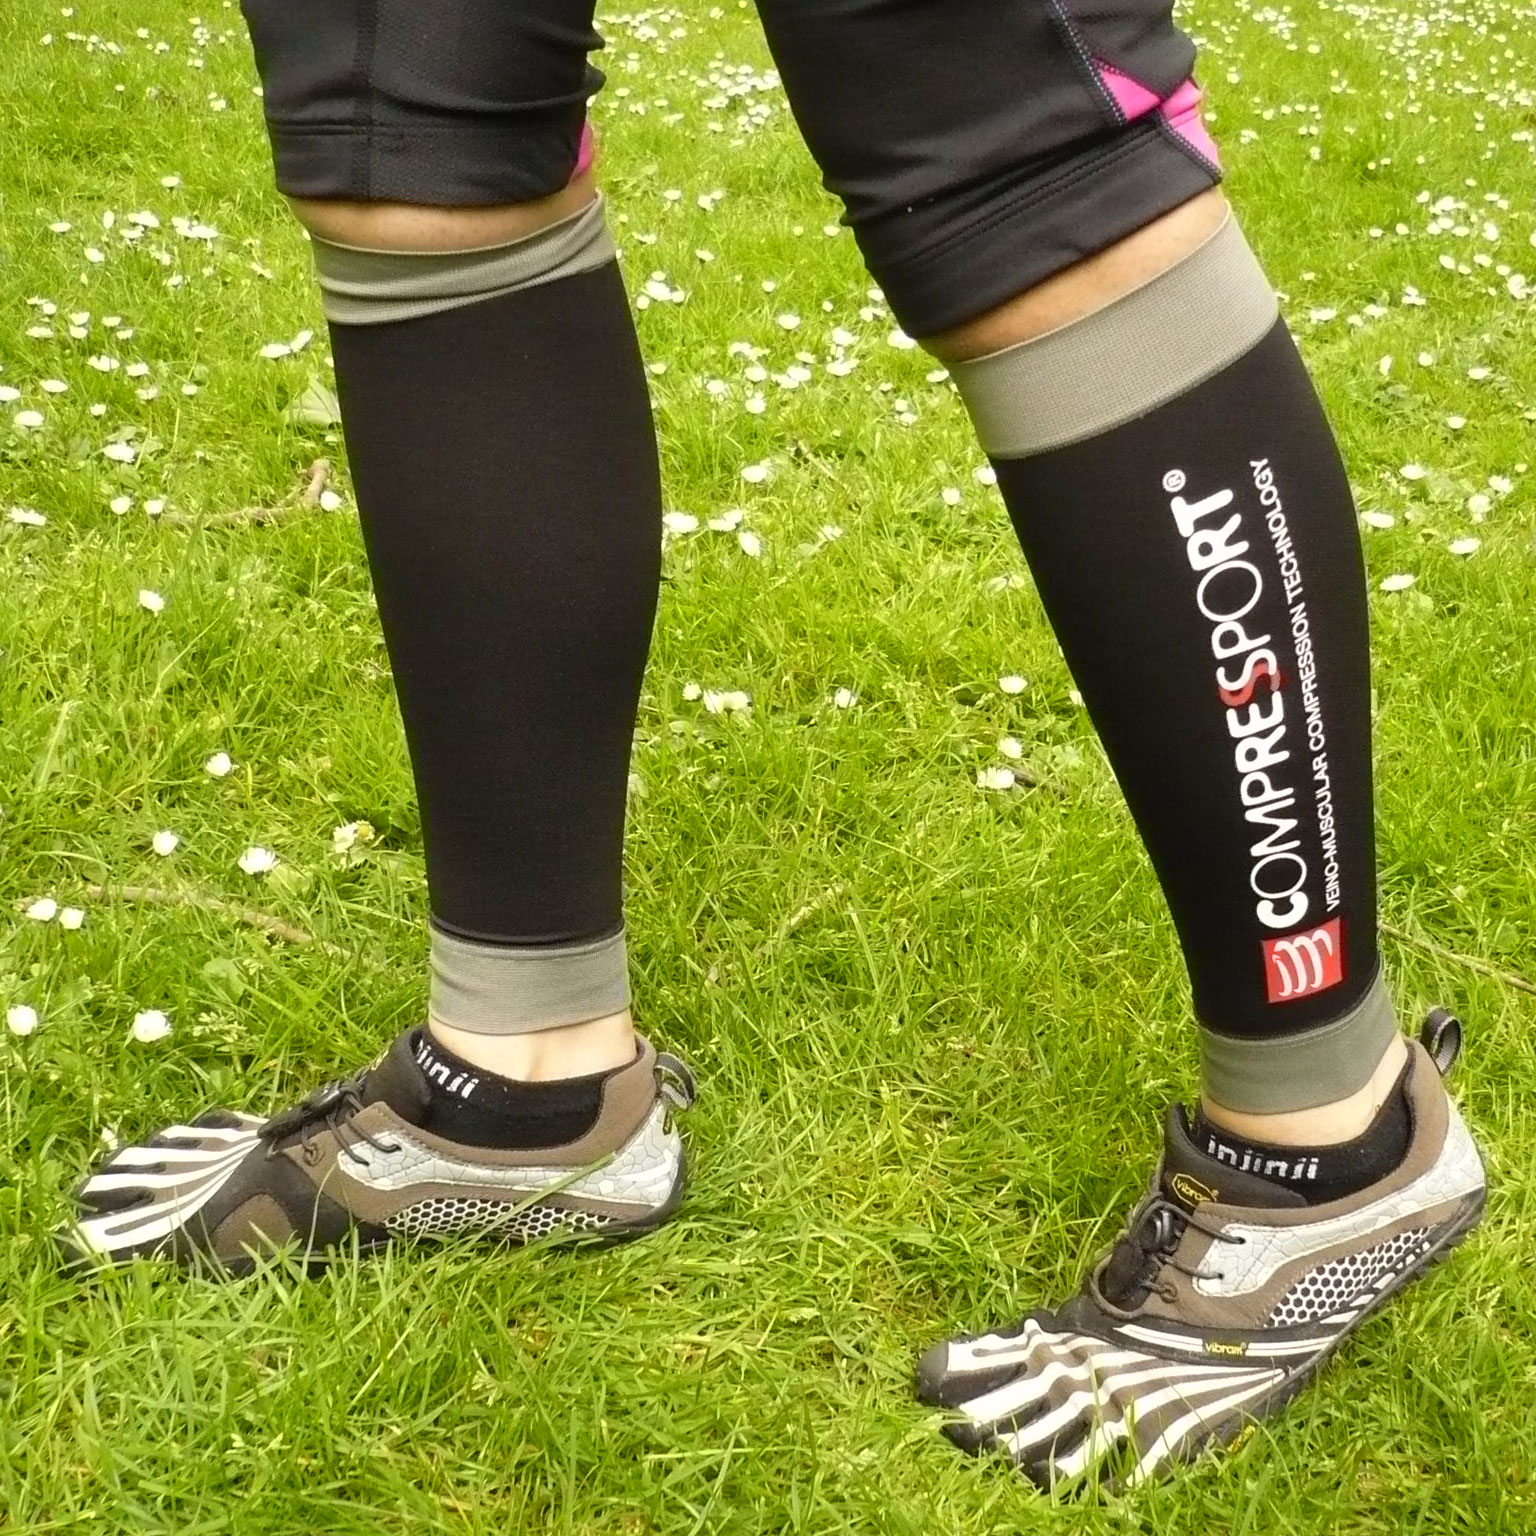 Compressport Race and Recovery Calf Guards